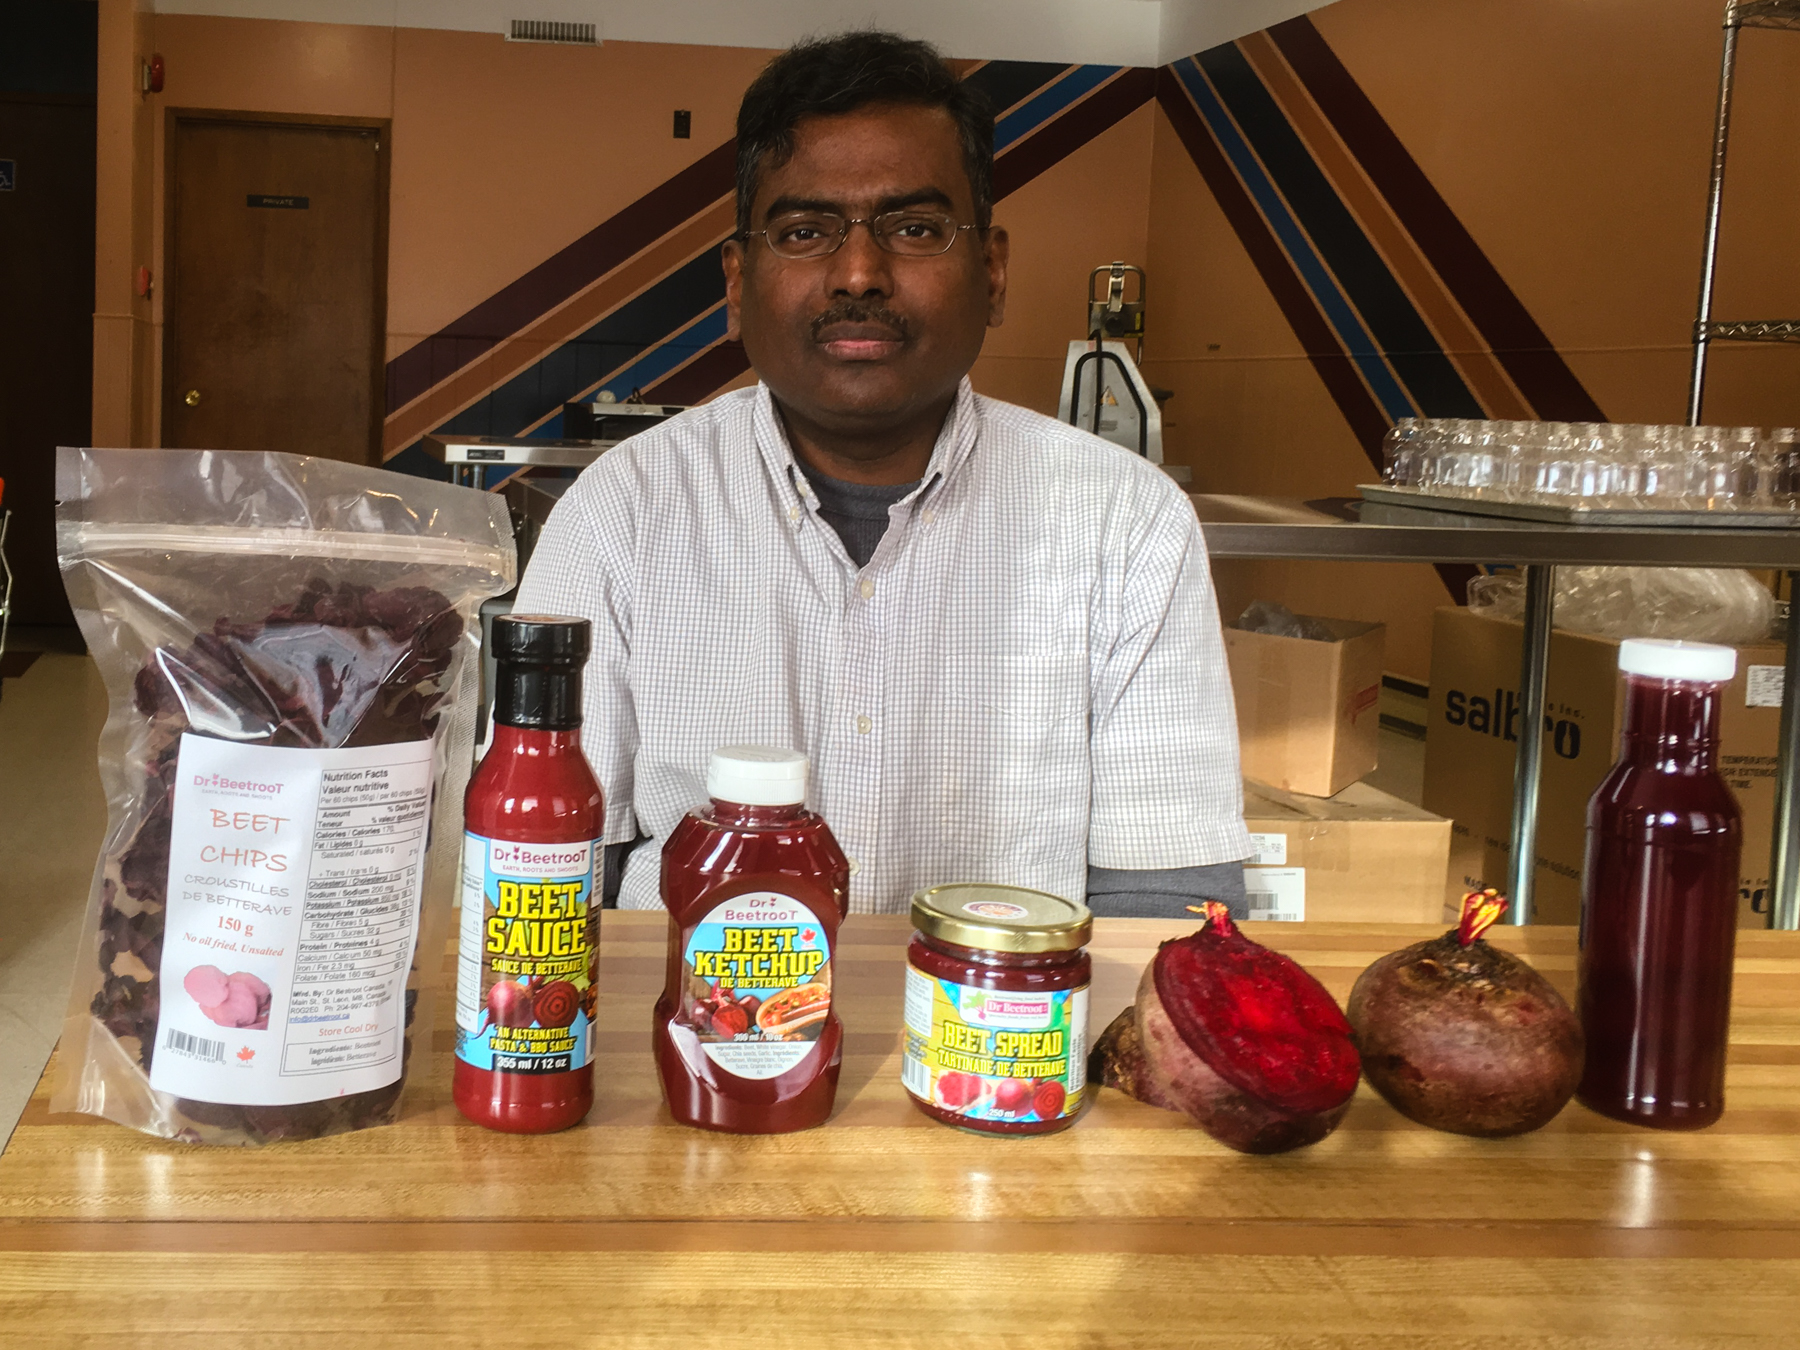 Canadian Tastemakers: Anan Palanichamy of Dr Beetroot